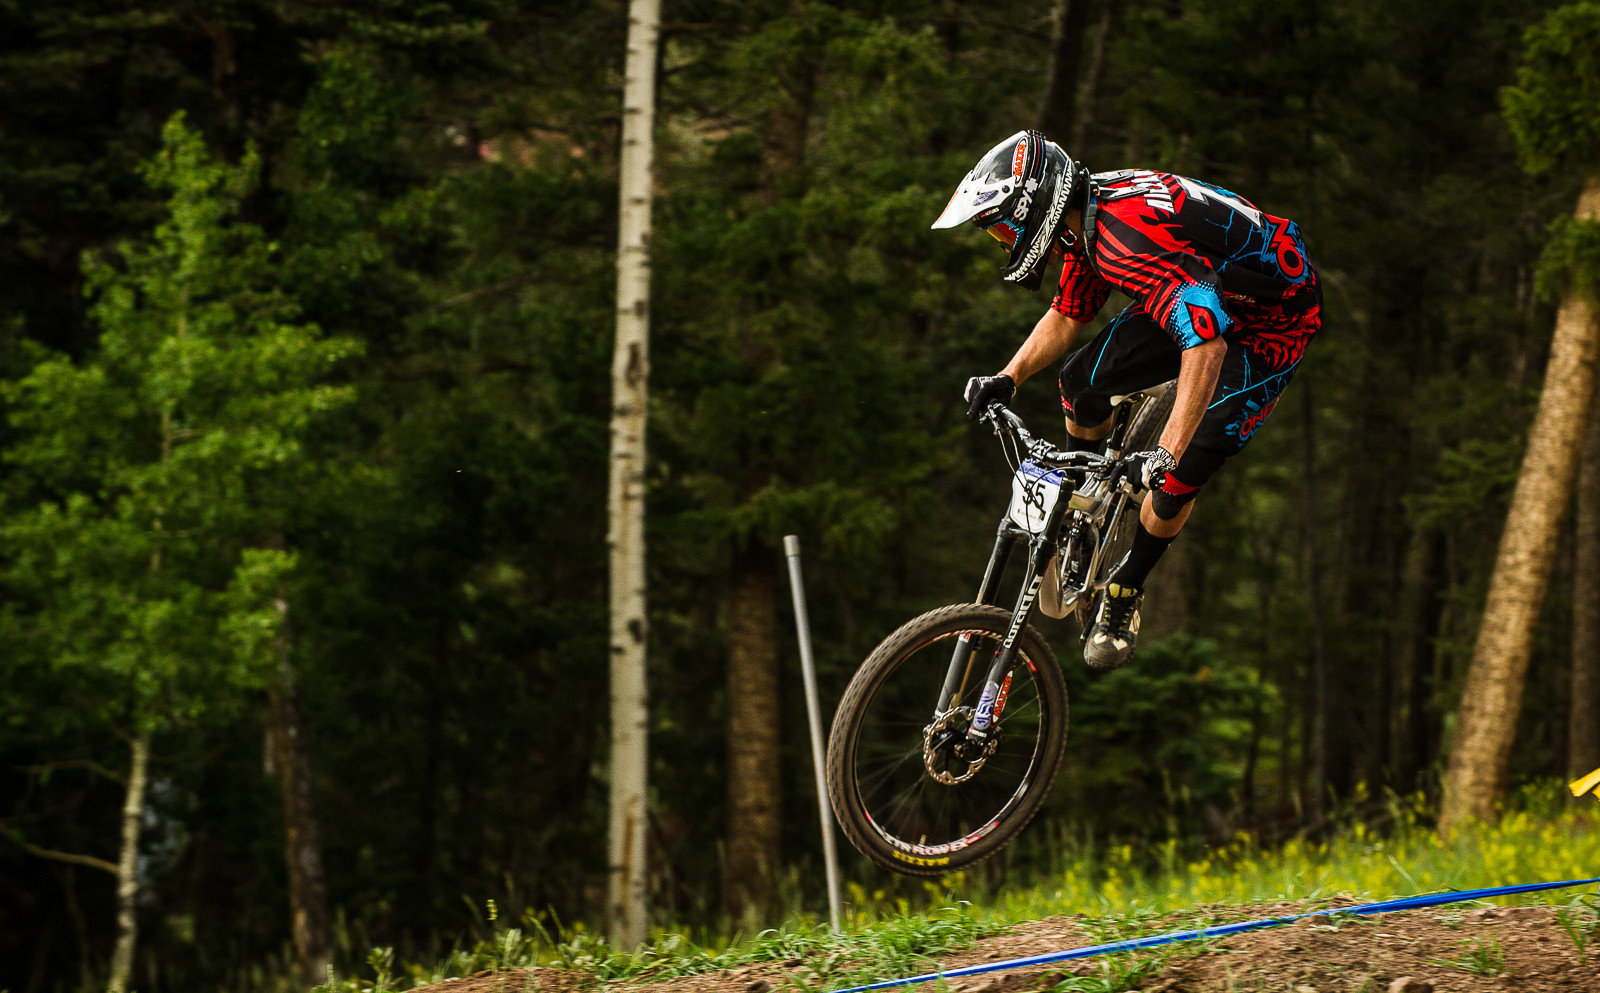 Kevin Aiello, 4th Place, U.S. National Championships Downhill - U.S. National Championship Downhill Finals Photos - Mountain Biking Pictures - Vital MTB